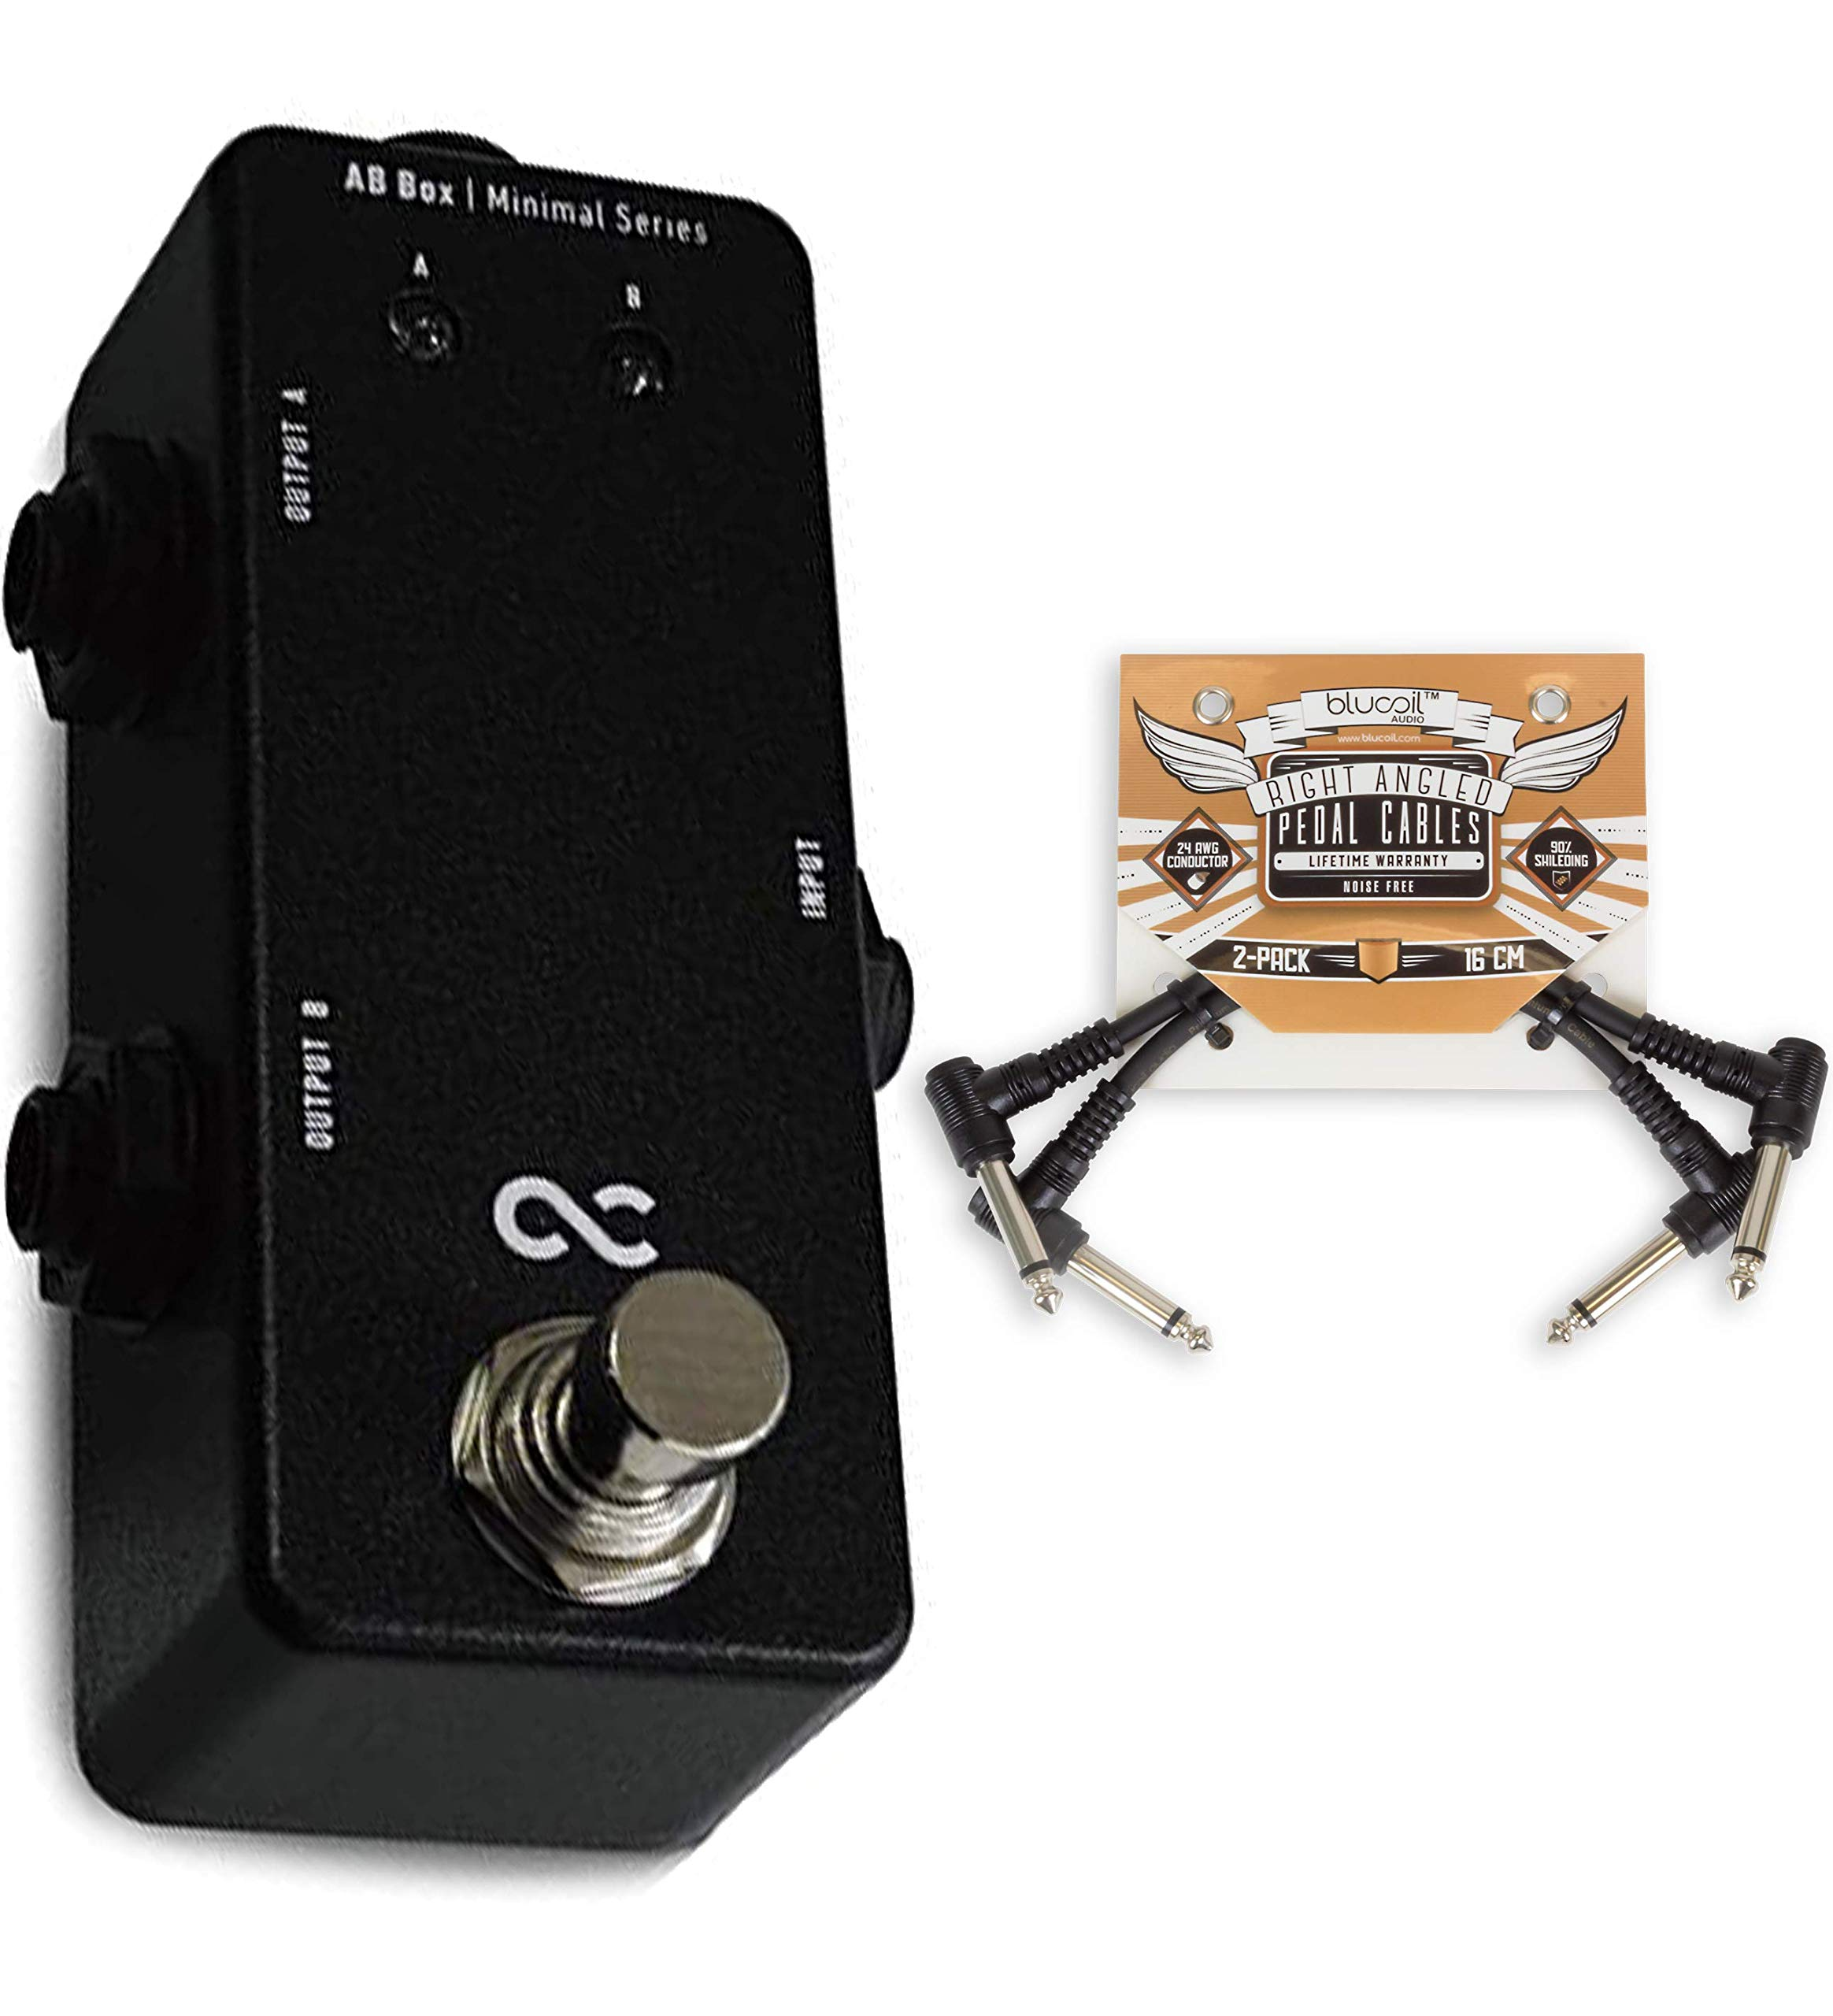 One Control Minimal Series AB Box Bundle with 2-Pack of Blucoil Pedal Patch Cables